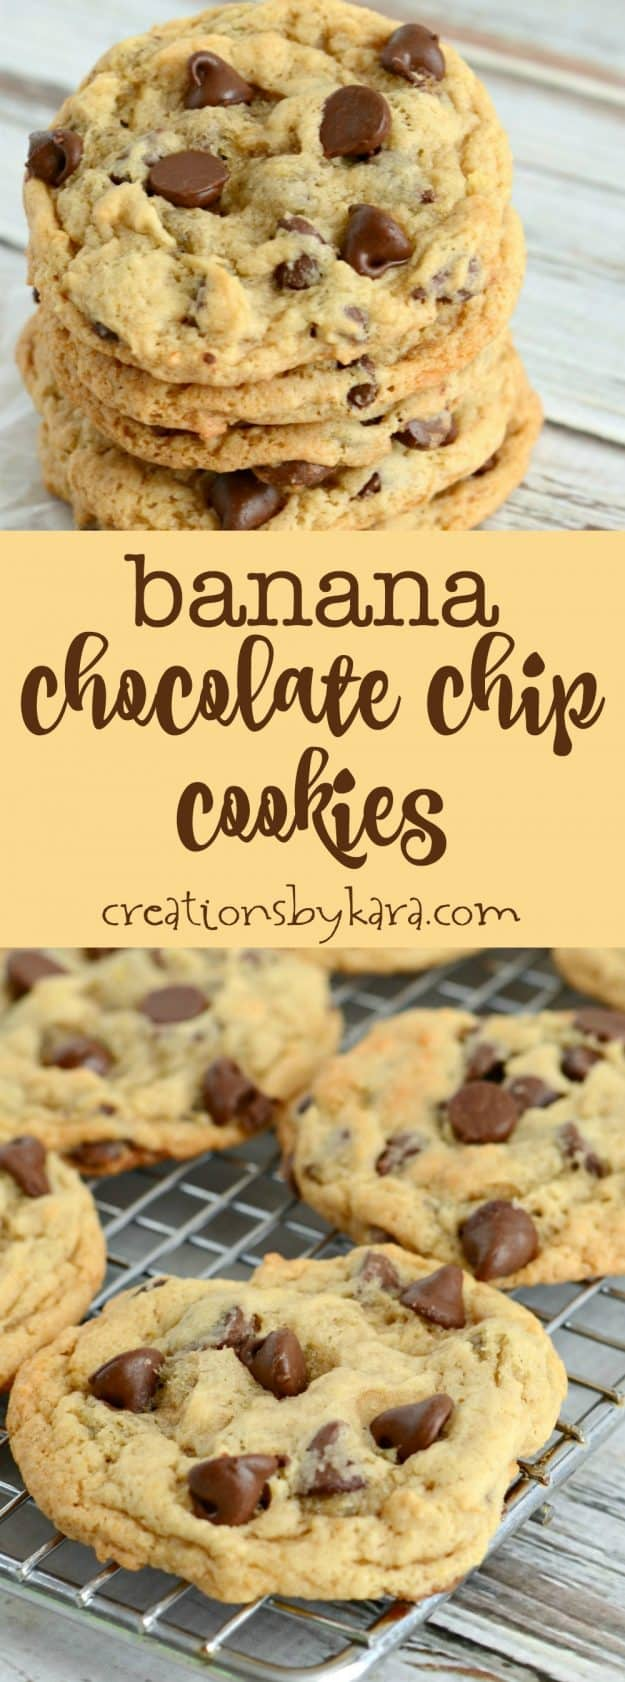 Recipe for the best chewy banana chocolate chip cookies. They are egg-free, and so yummy! Everyone loved these banana cookies!